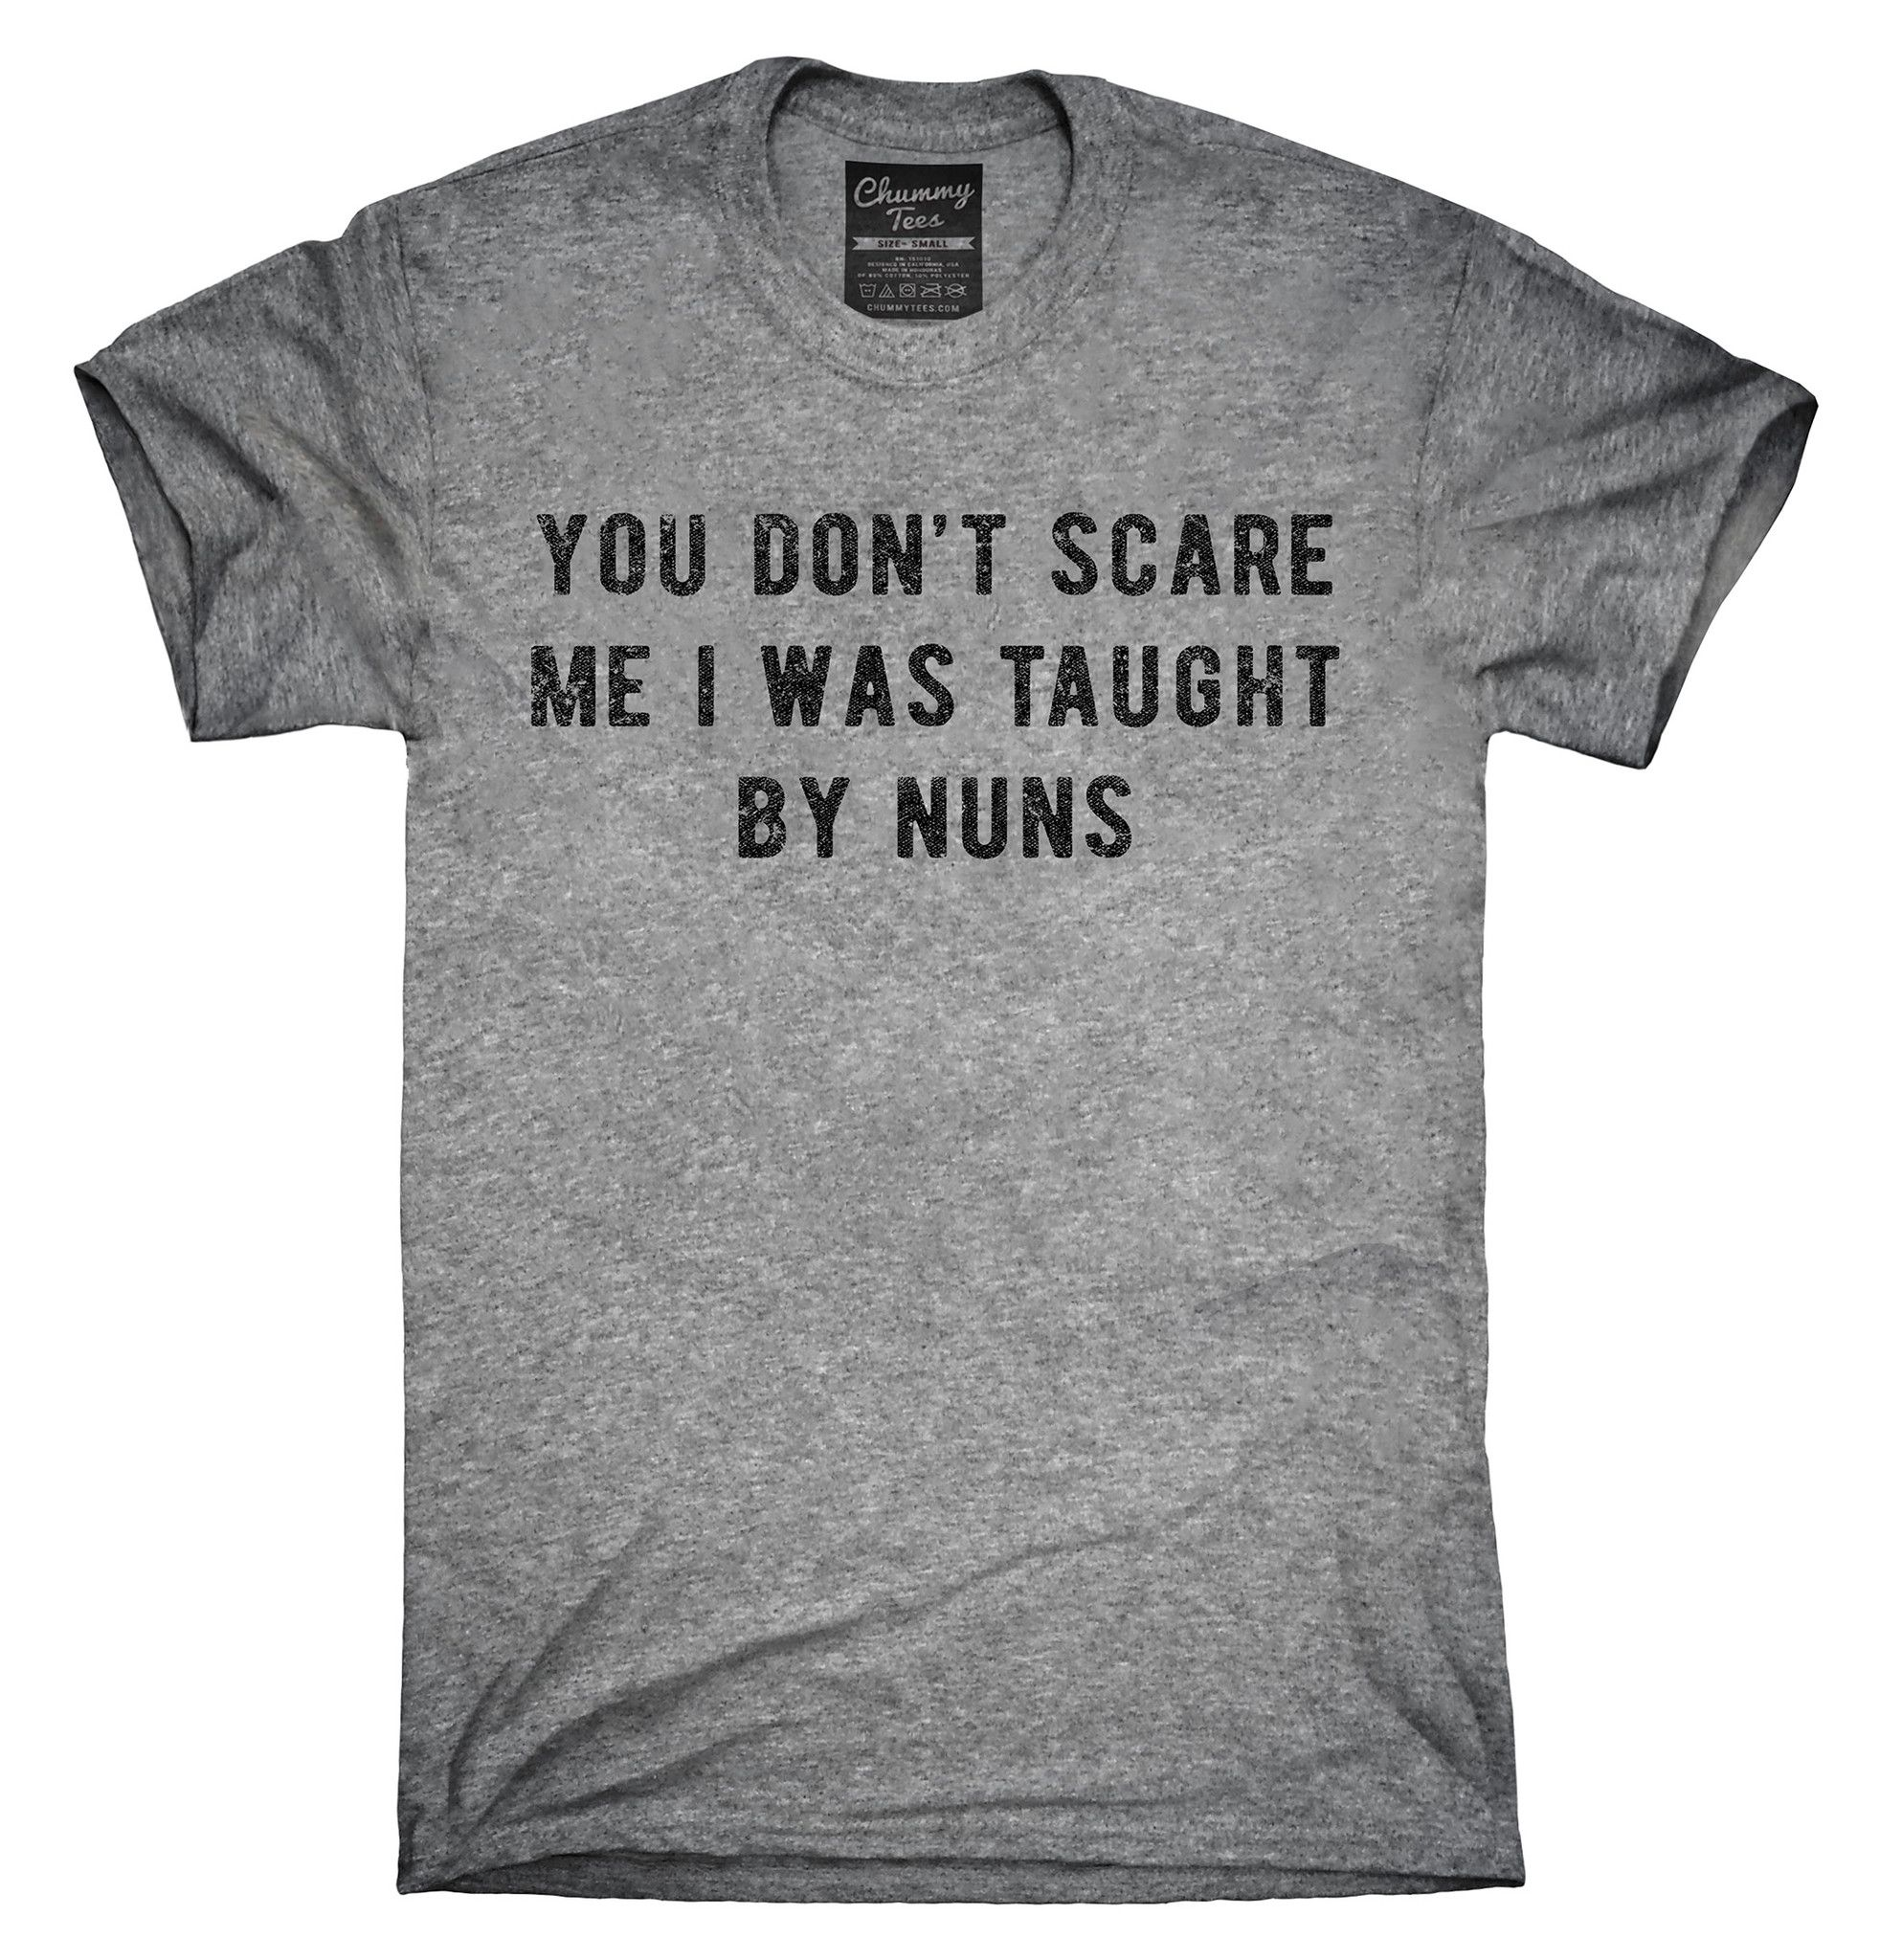 You Don't Scare Me I Was Taught By Nuns Shirt, Hoodies, Tanktops